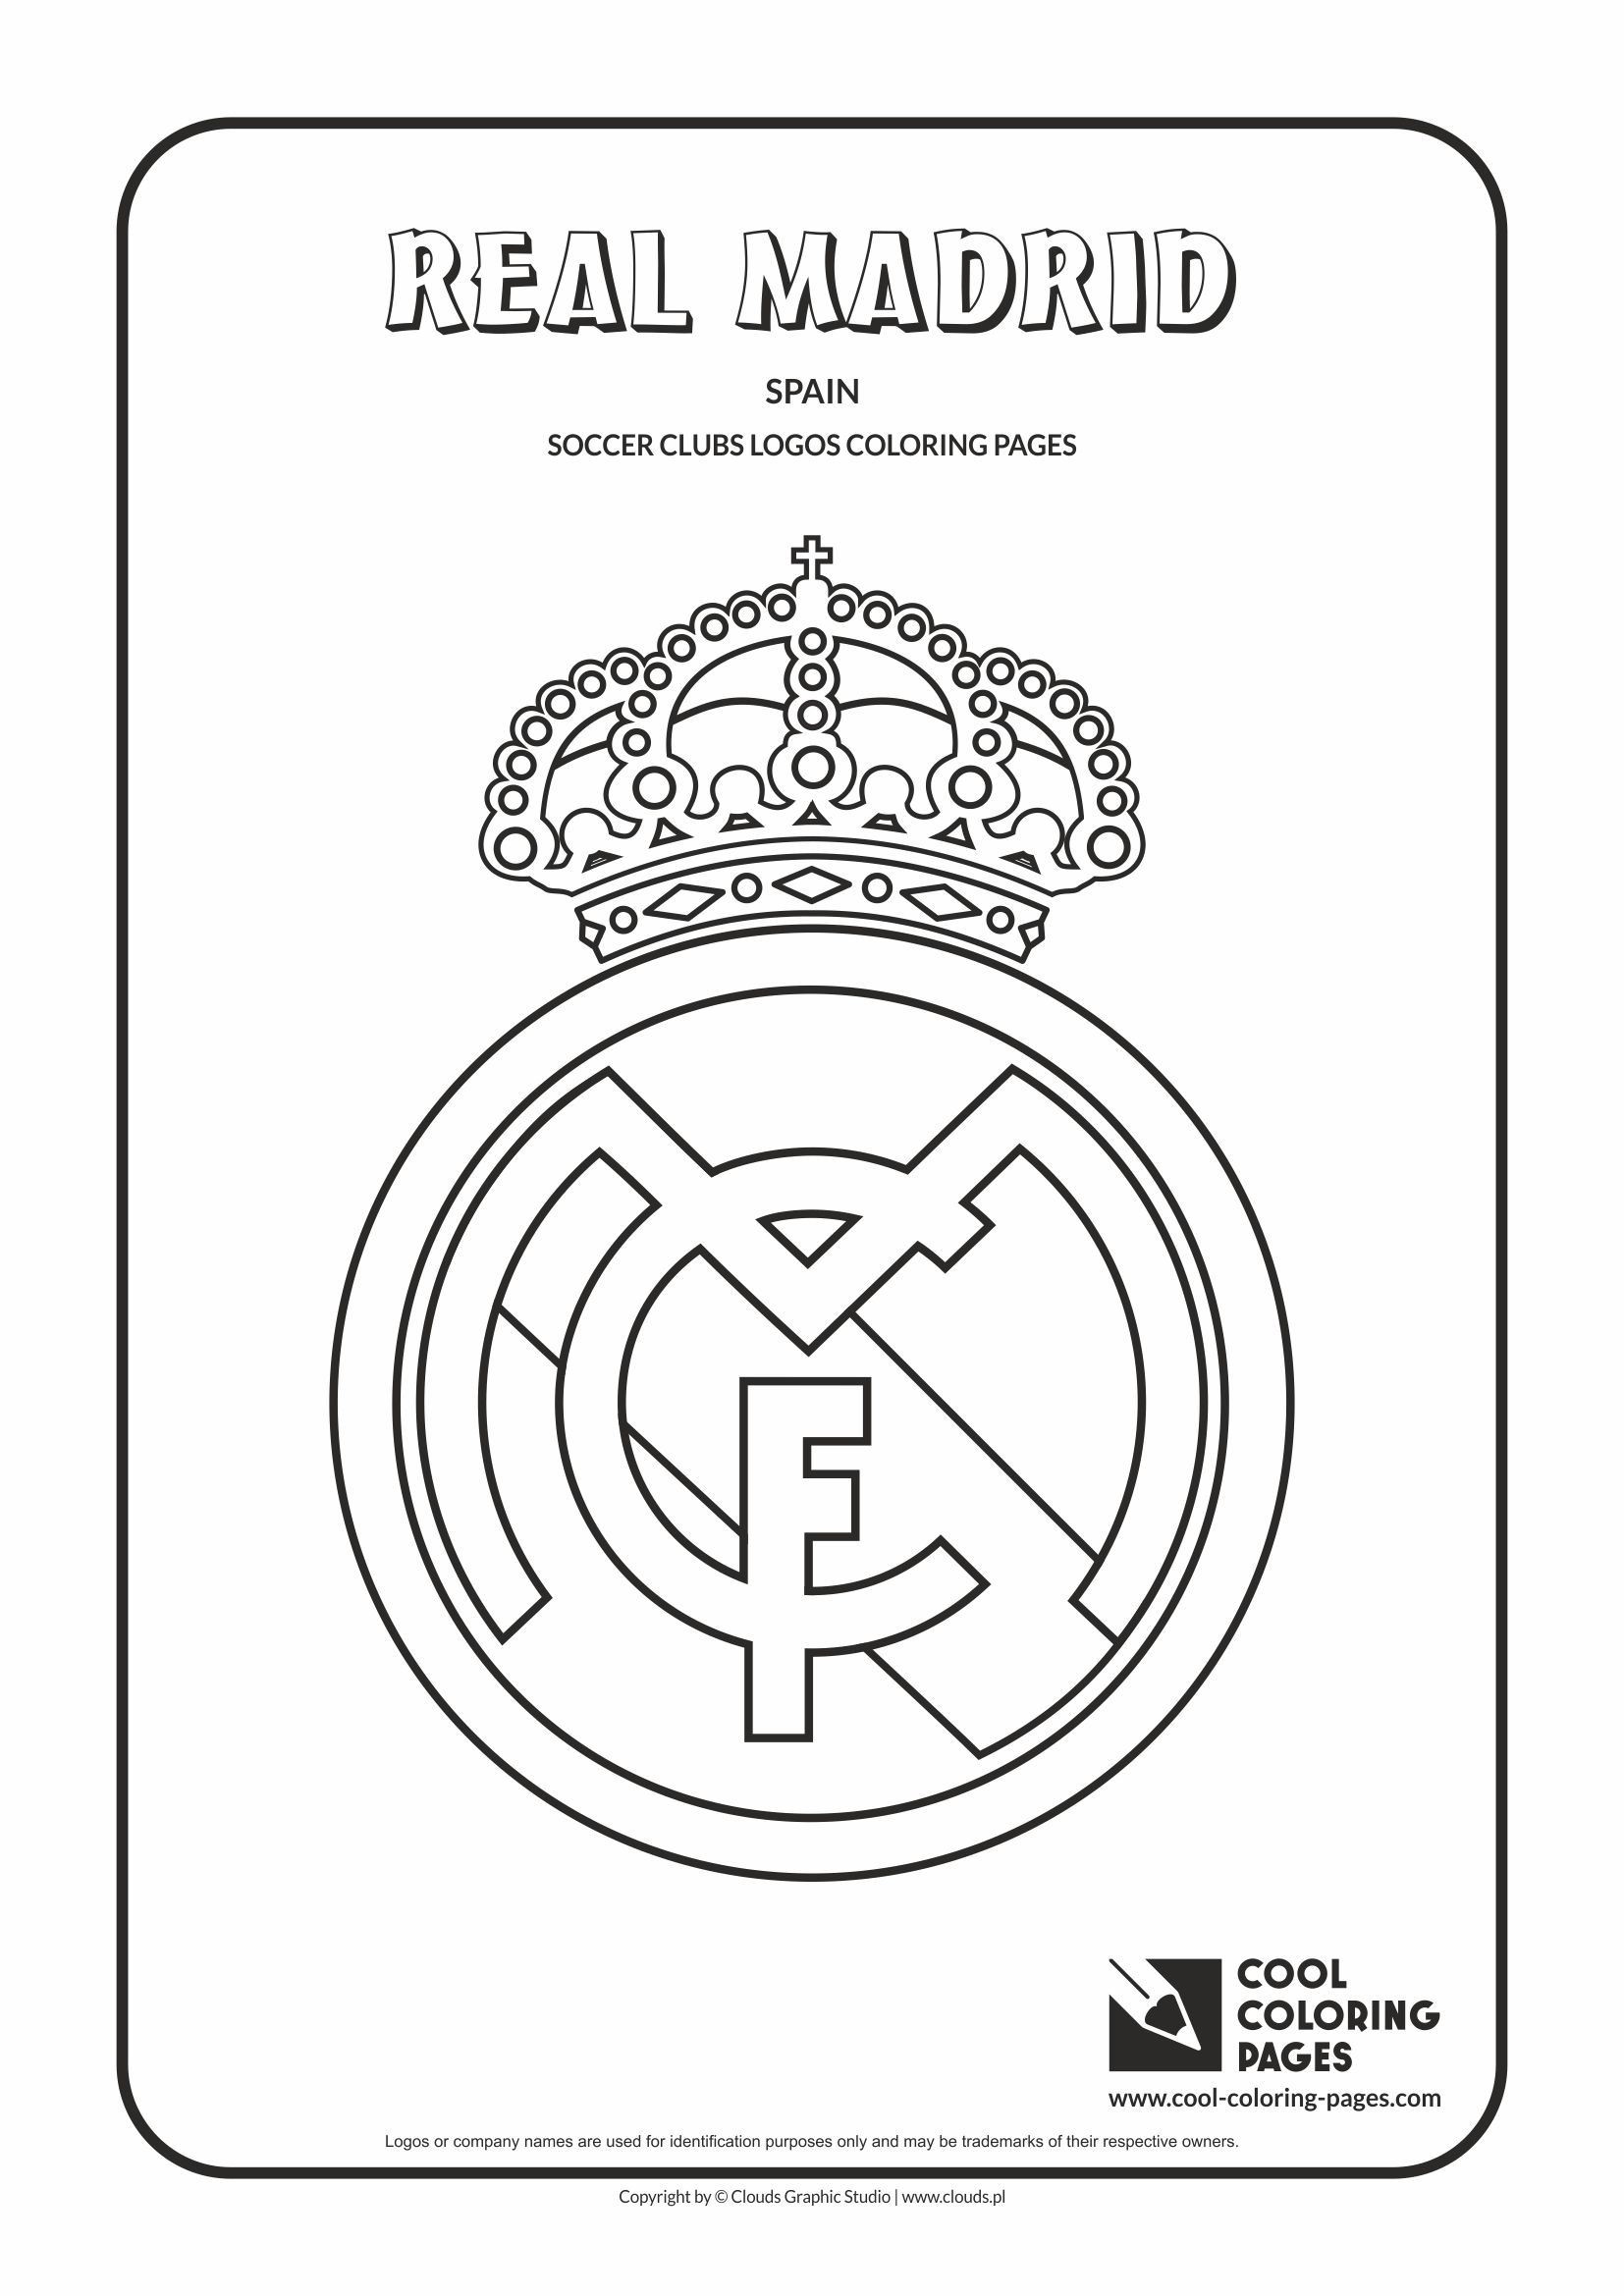 Cool Coloring Pages Real Madrid logo coloring page - Cool Coloring ...